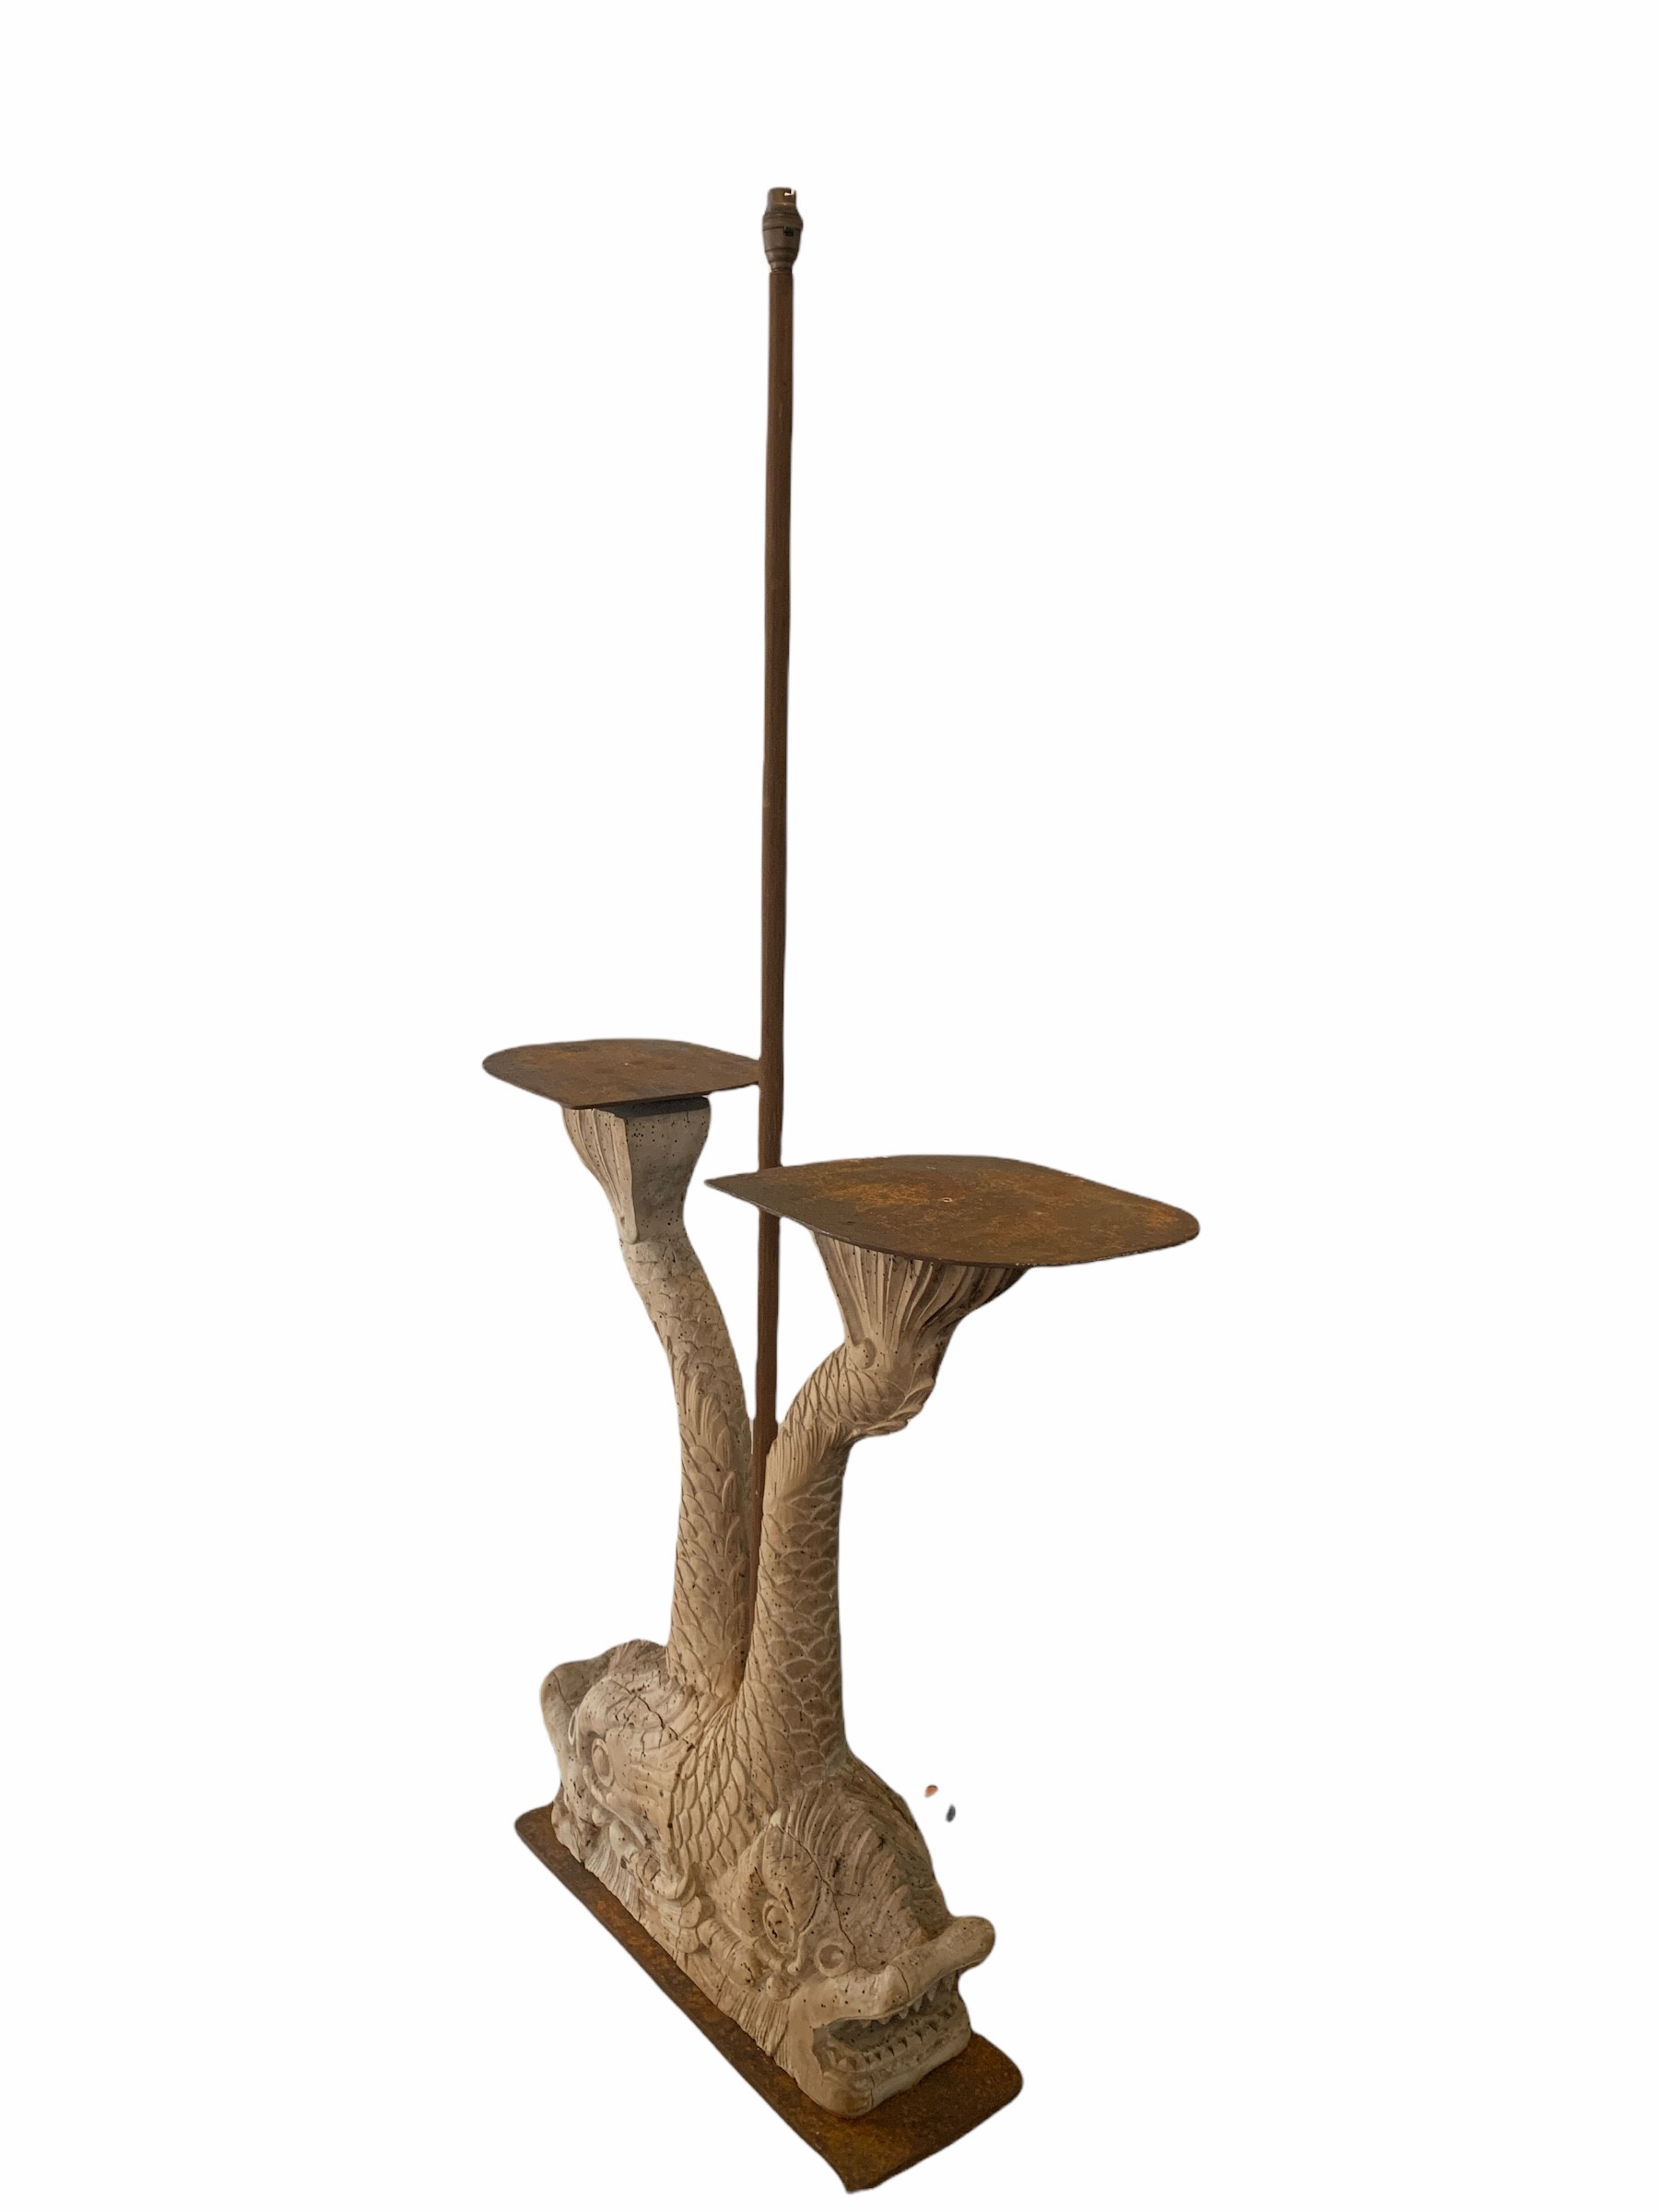 A DECORATIVE 19TH CENTURY & LATER CARVED WOOD OCCASIONAL LAMP TABLE FORMED AS TWO DIVING - Image 2 of 2